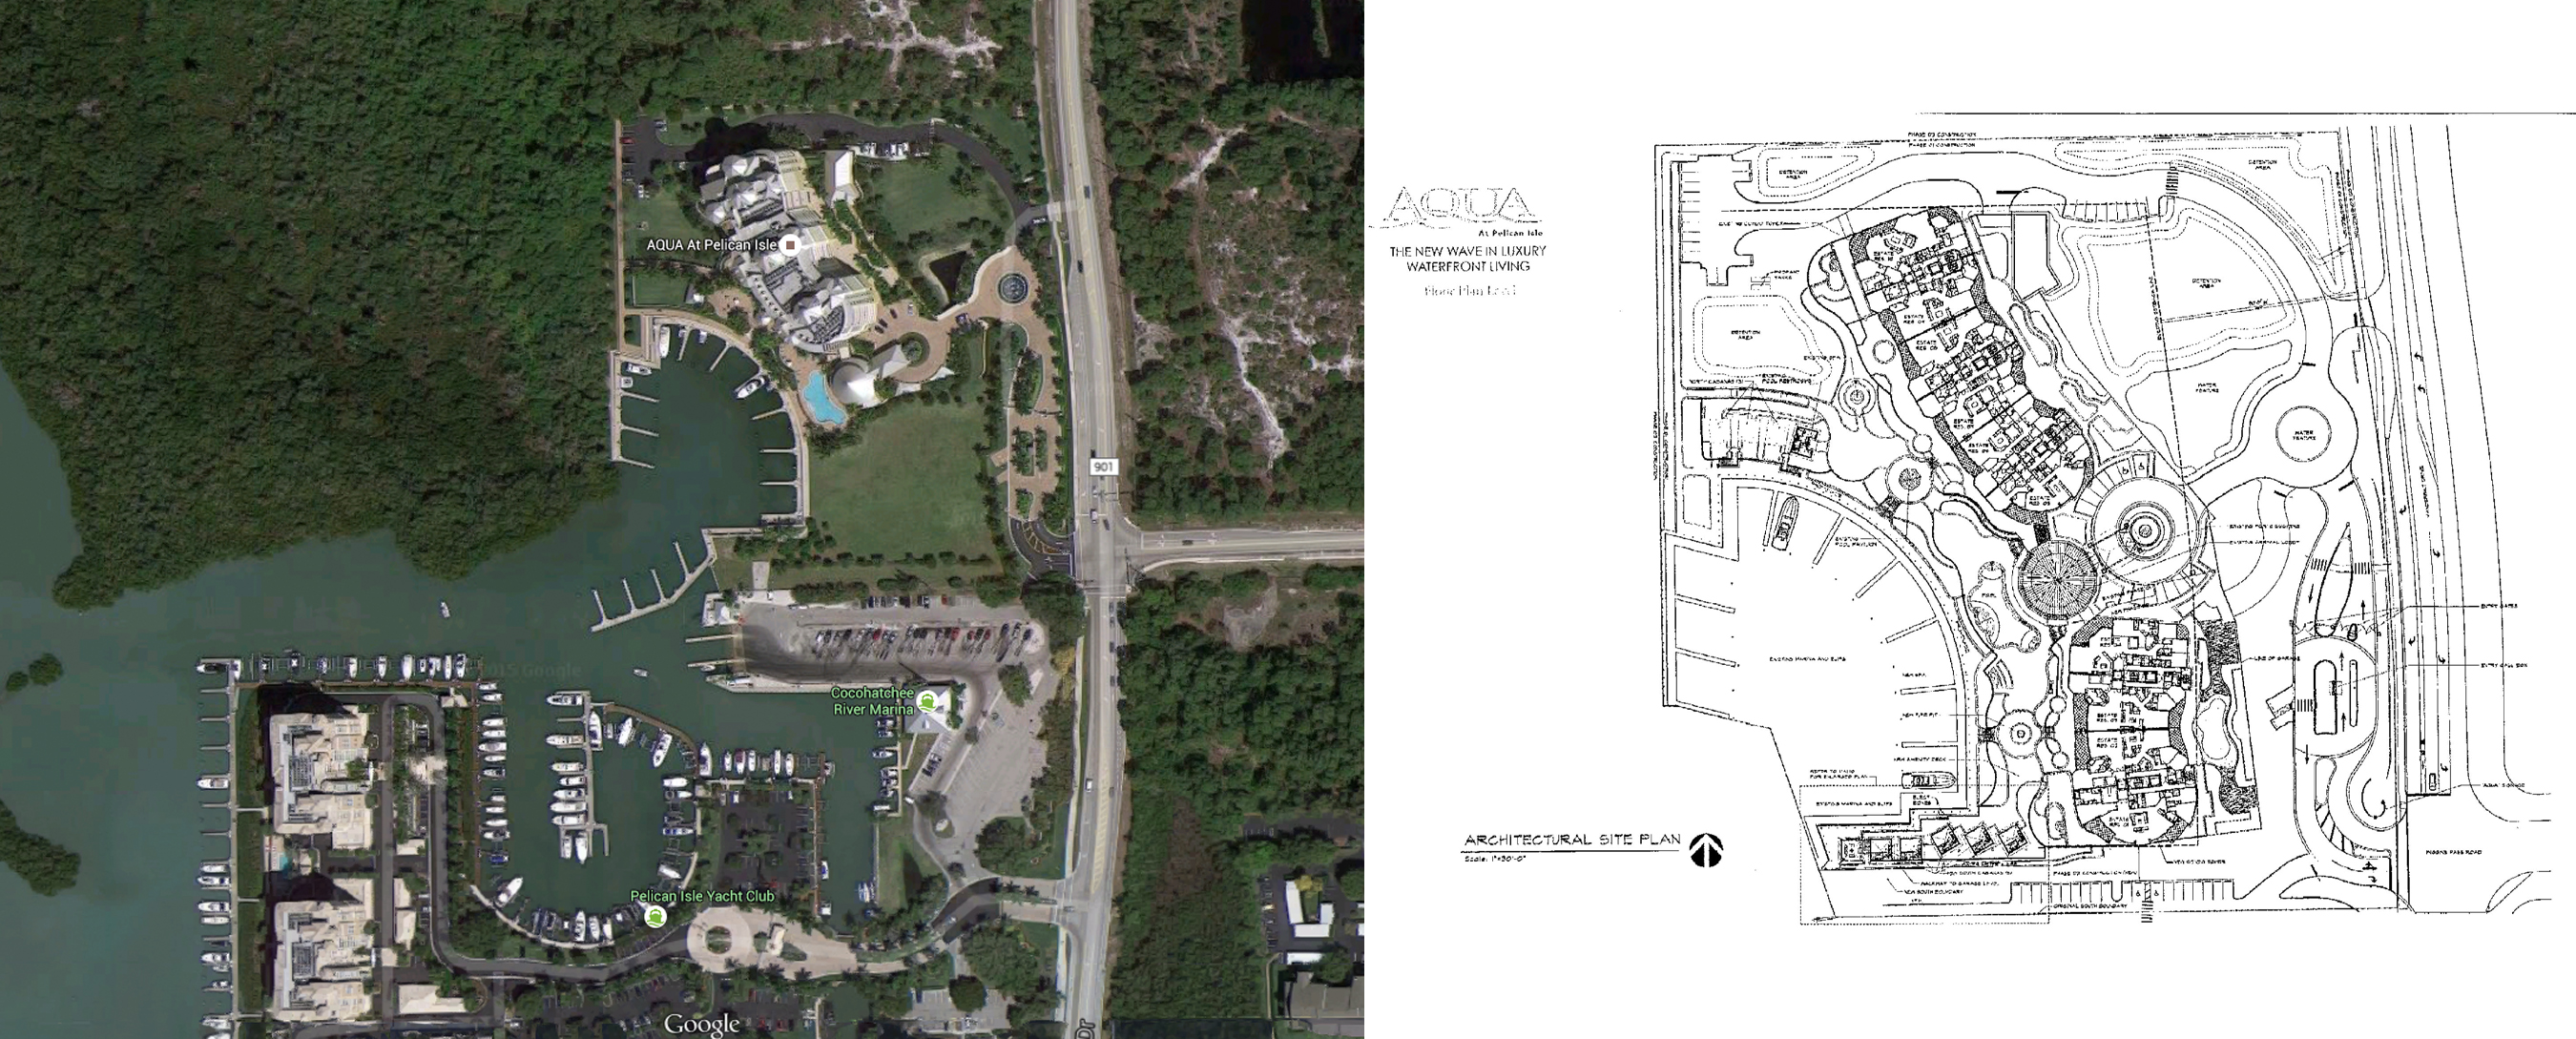 Google Earth aerial and site plan